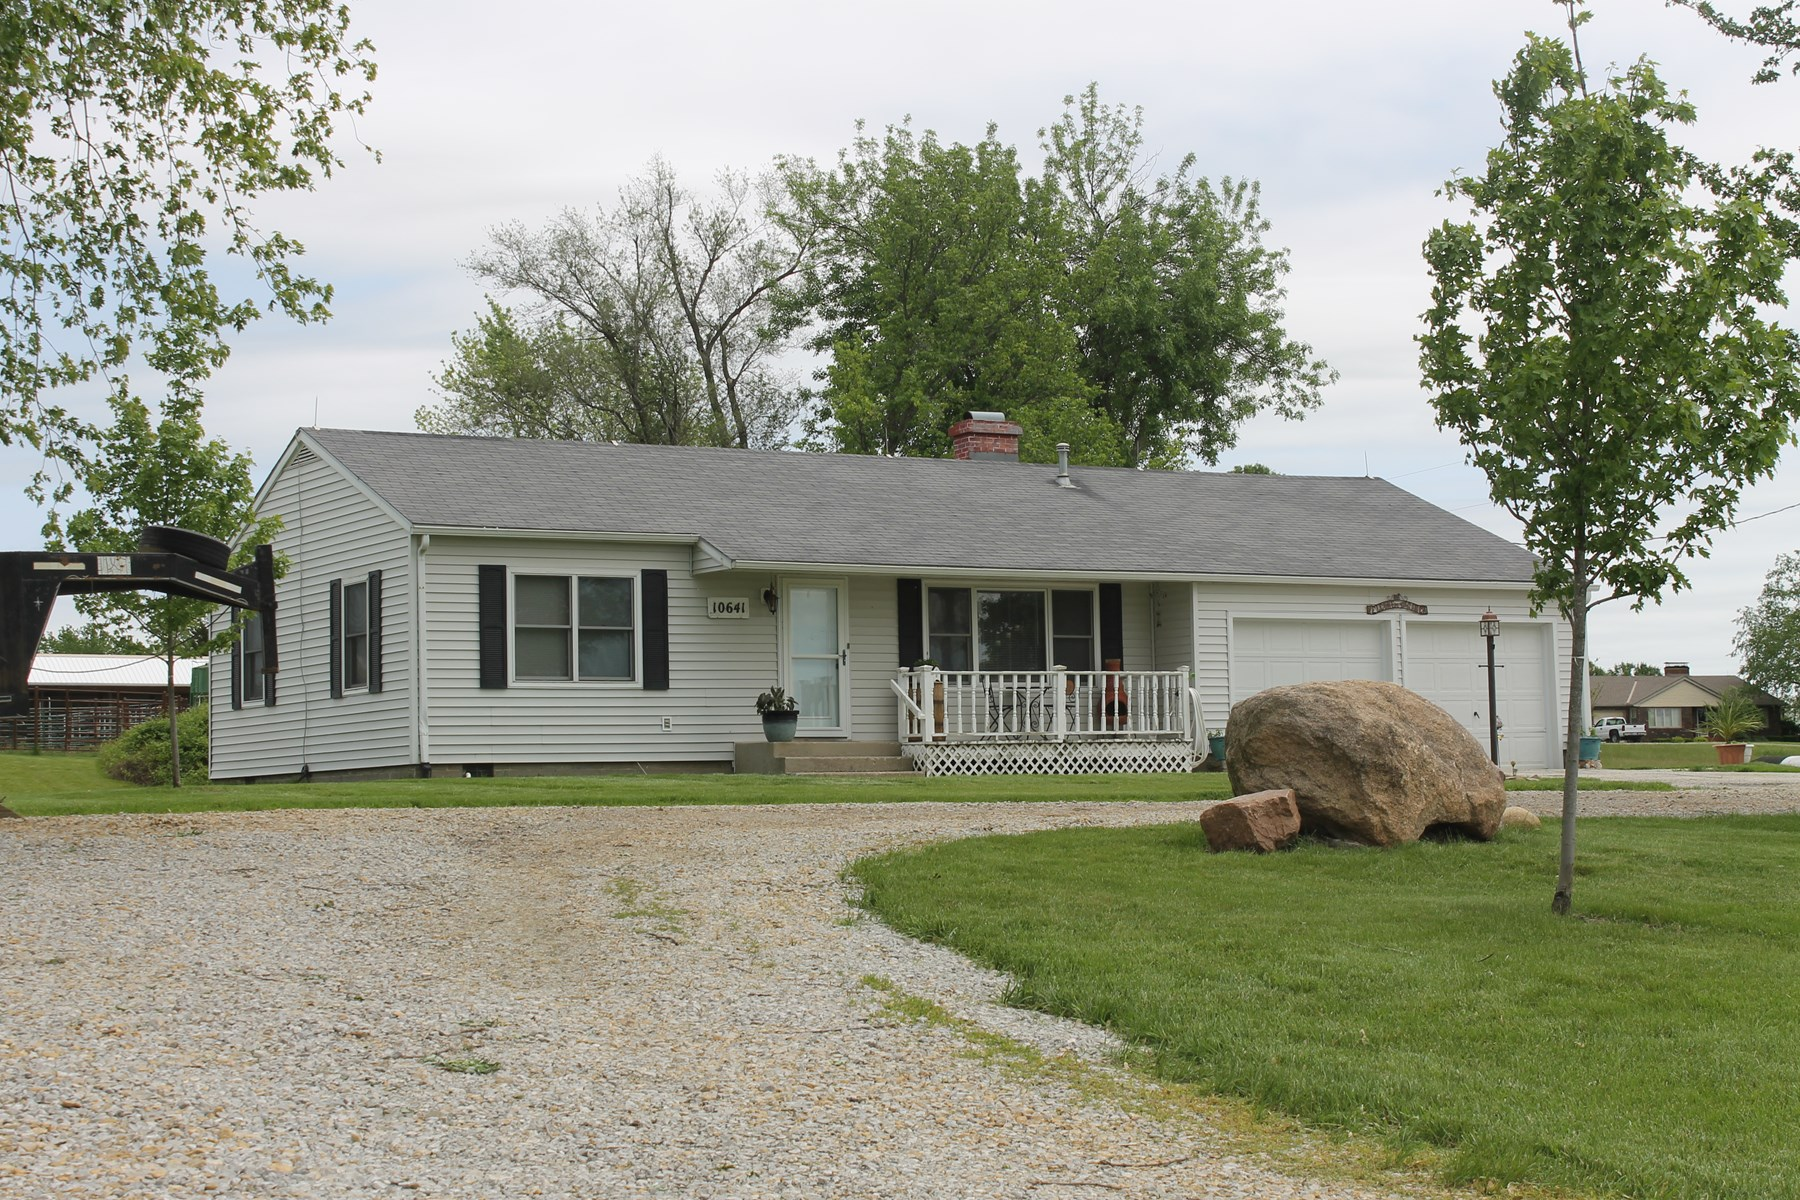 COUNTRY HOME FOR SALE - SOUTH CAMERON MO LOCATION